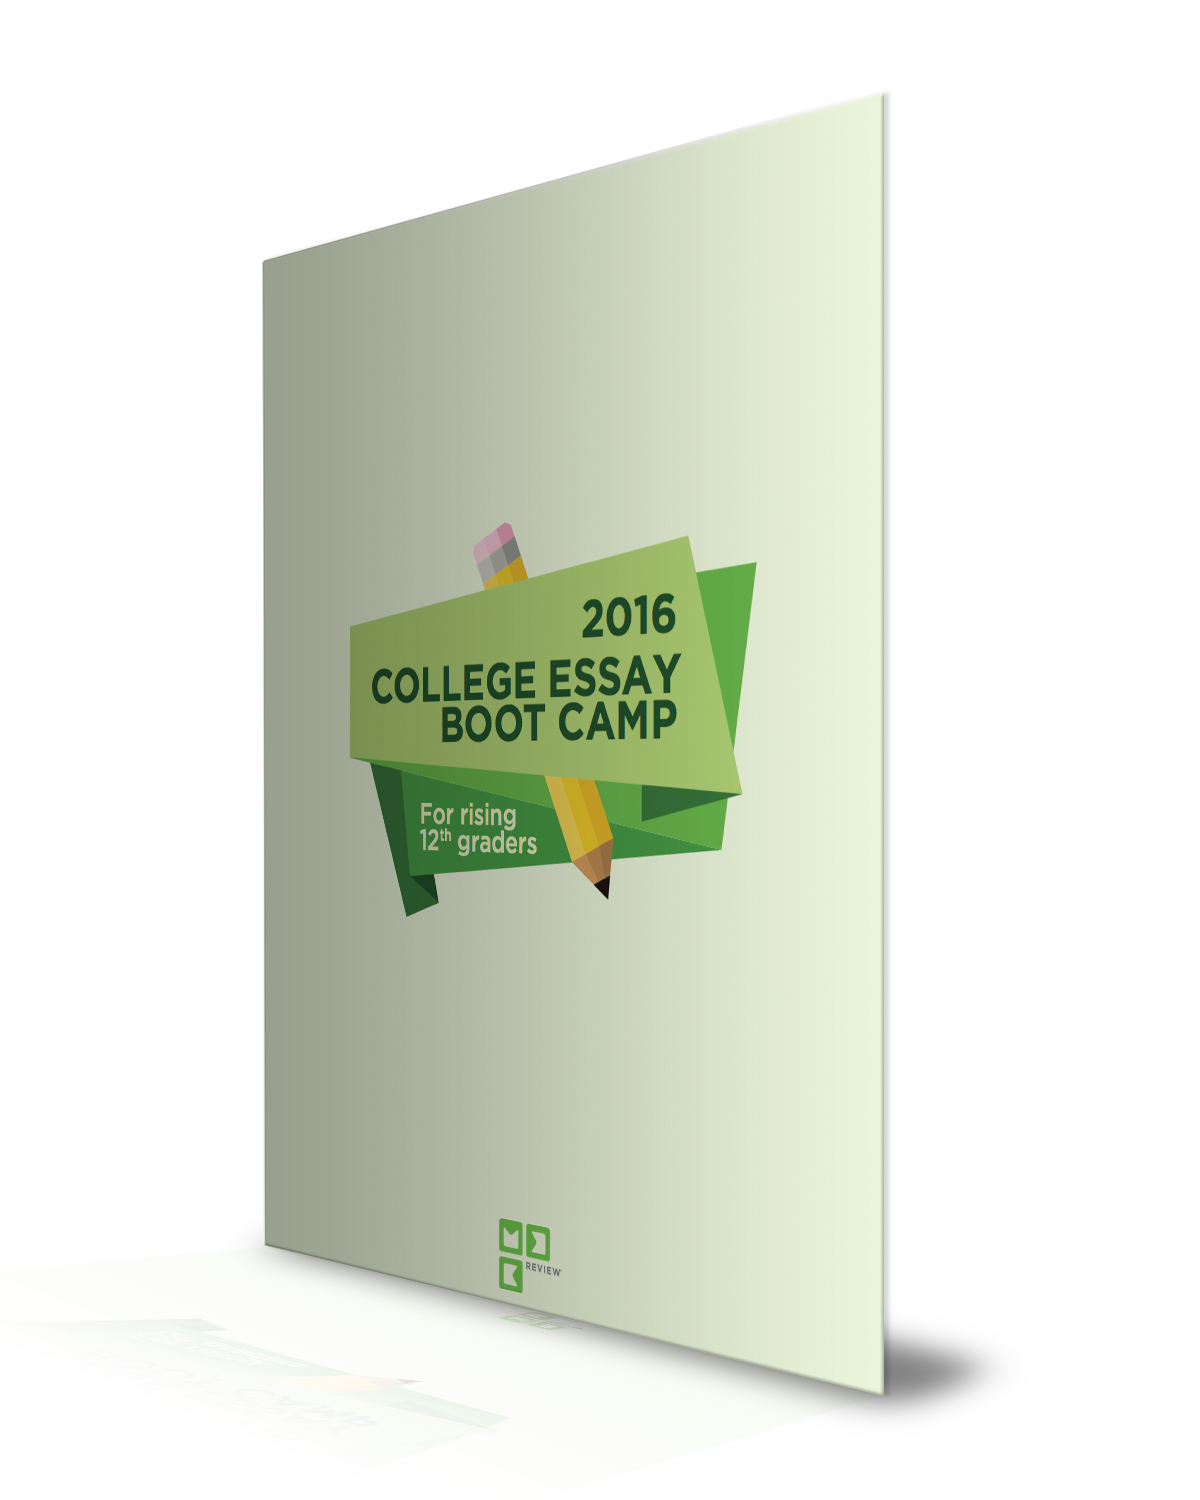 college essay boot camp mek review in palisades park nj college essay bootcamp is always packed so call 855 346 1410 to secure your spot today